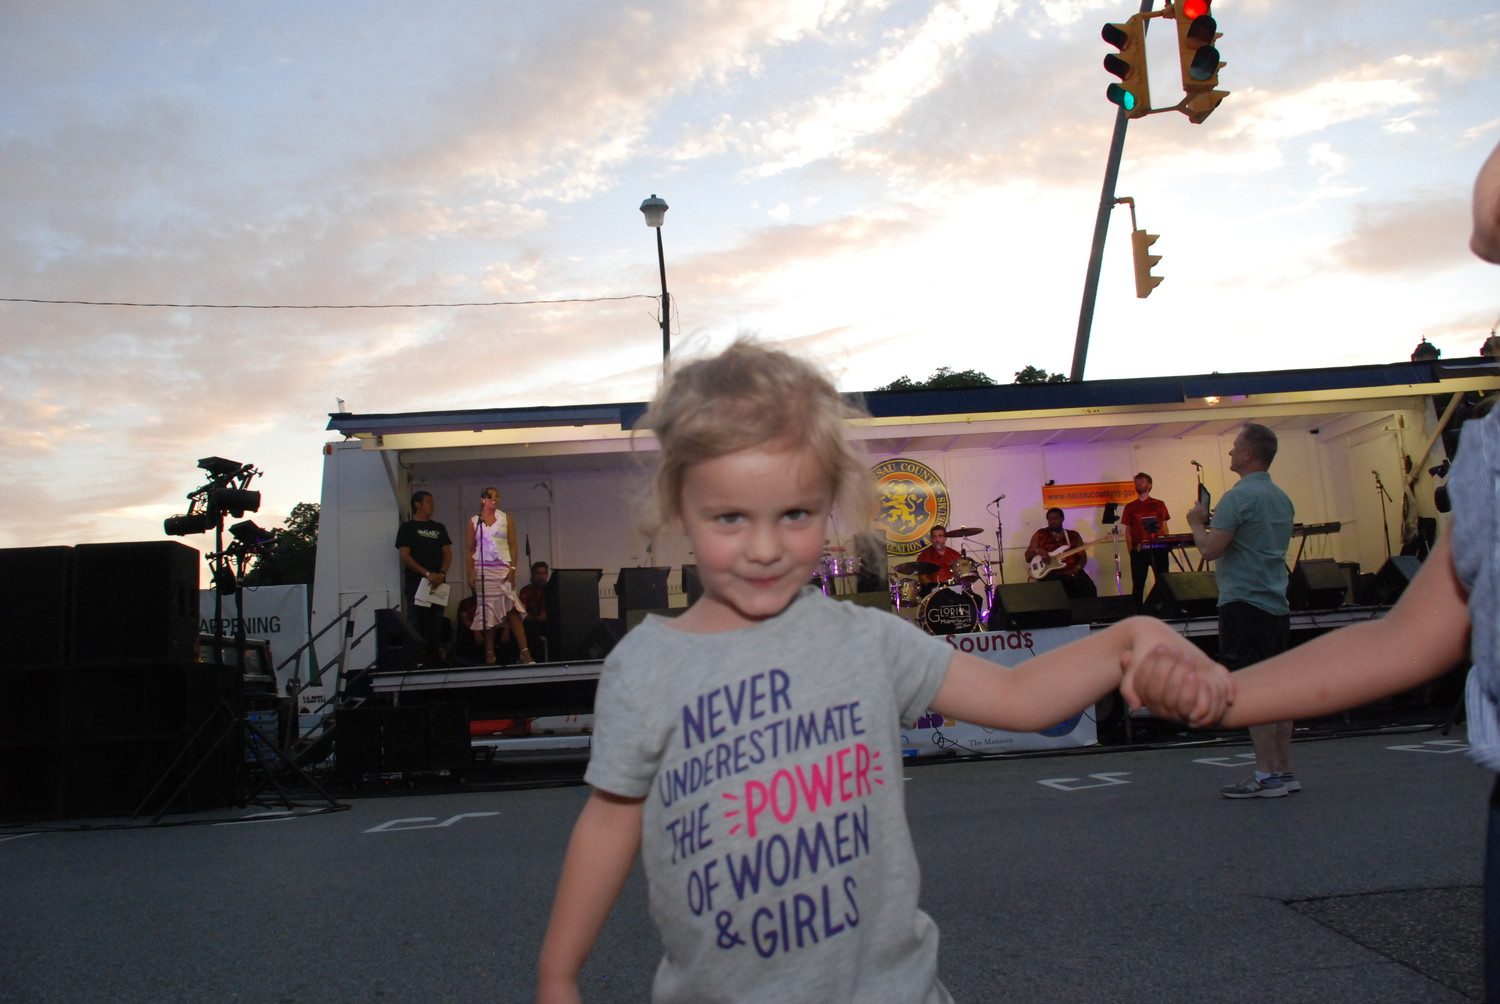 Elsie Mae, below, ran in circles around the dance area as the crowd awaited the start of the music.